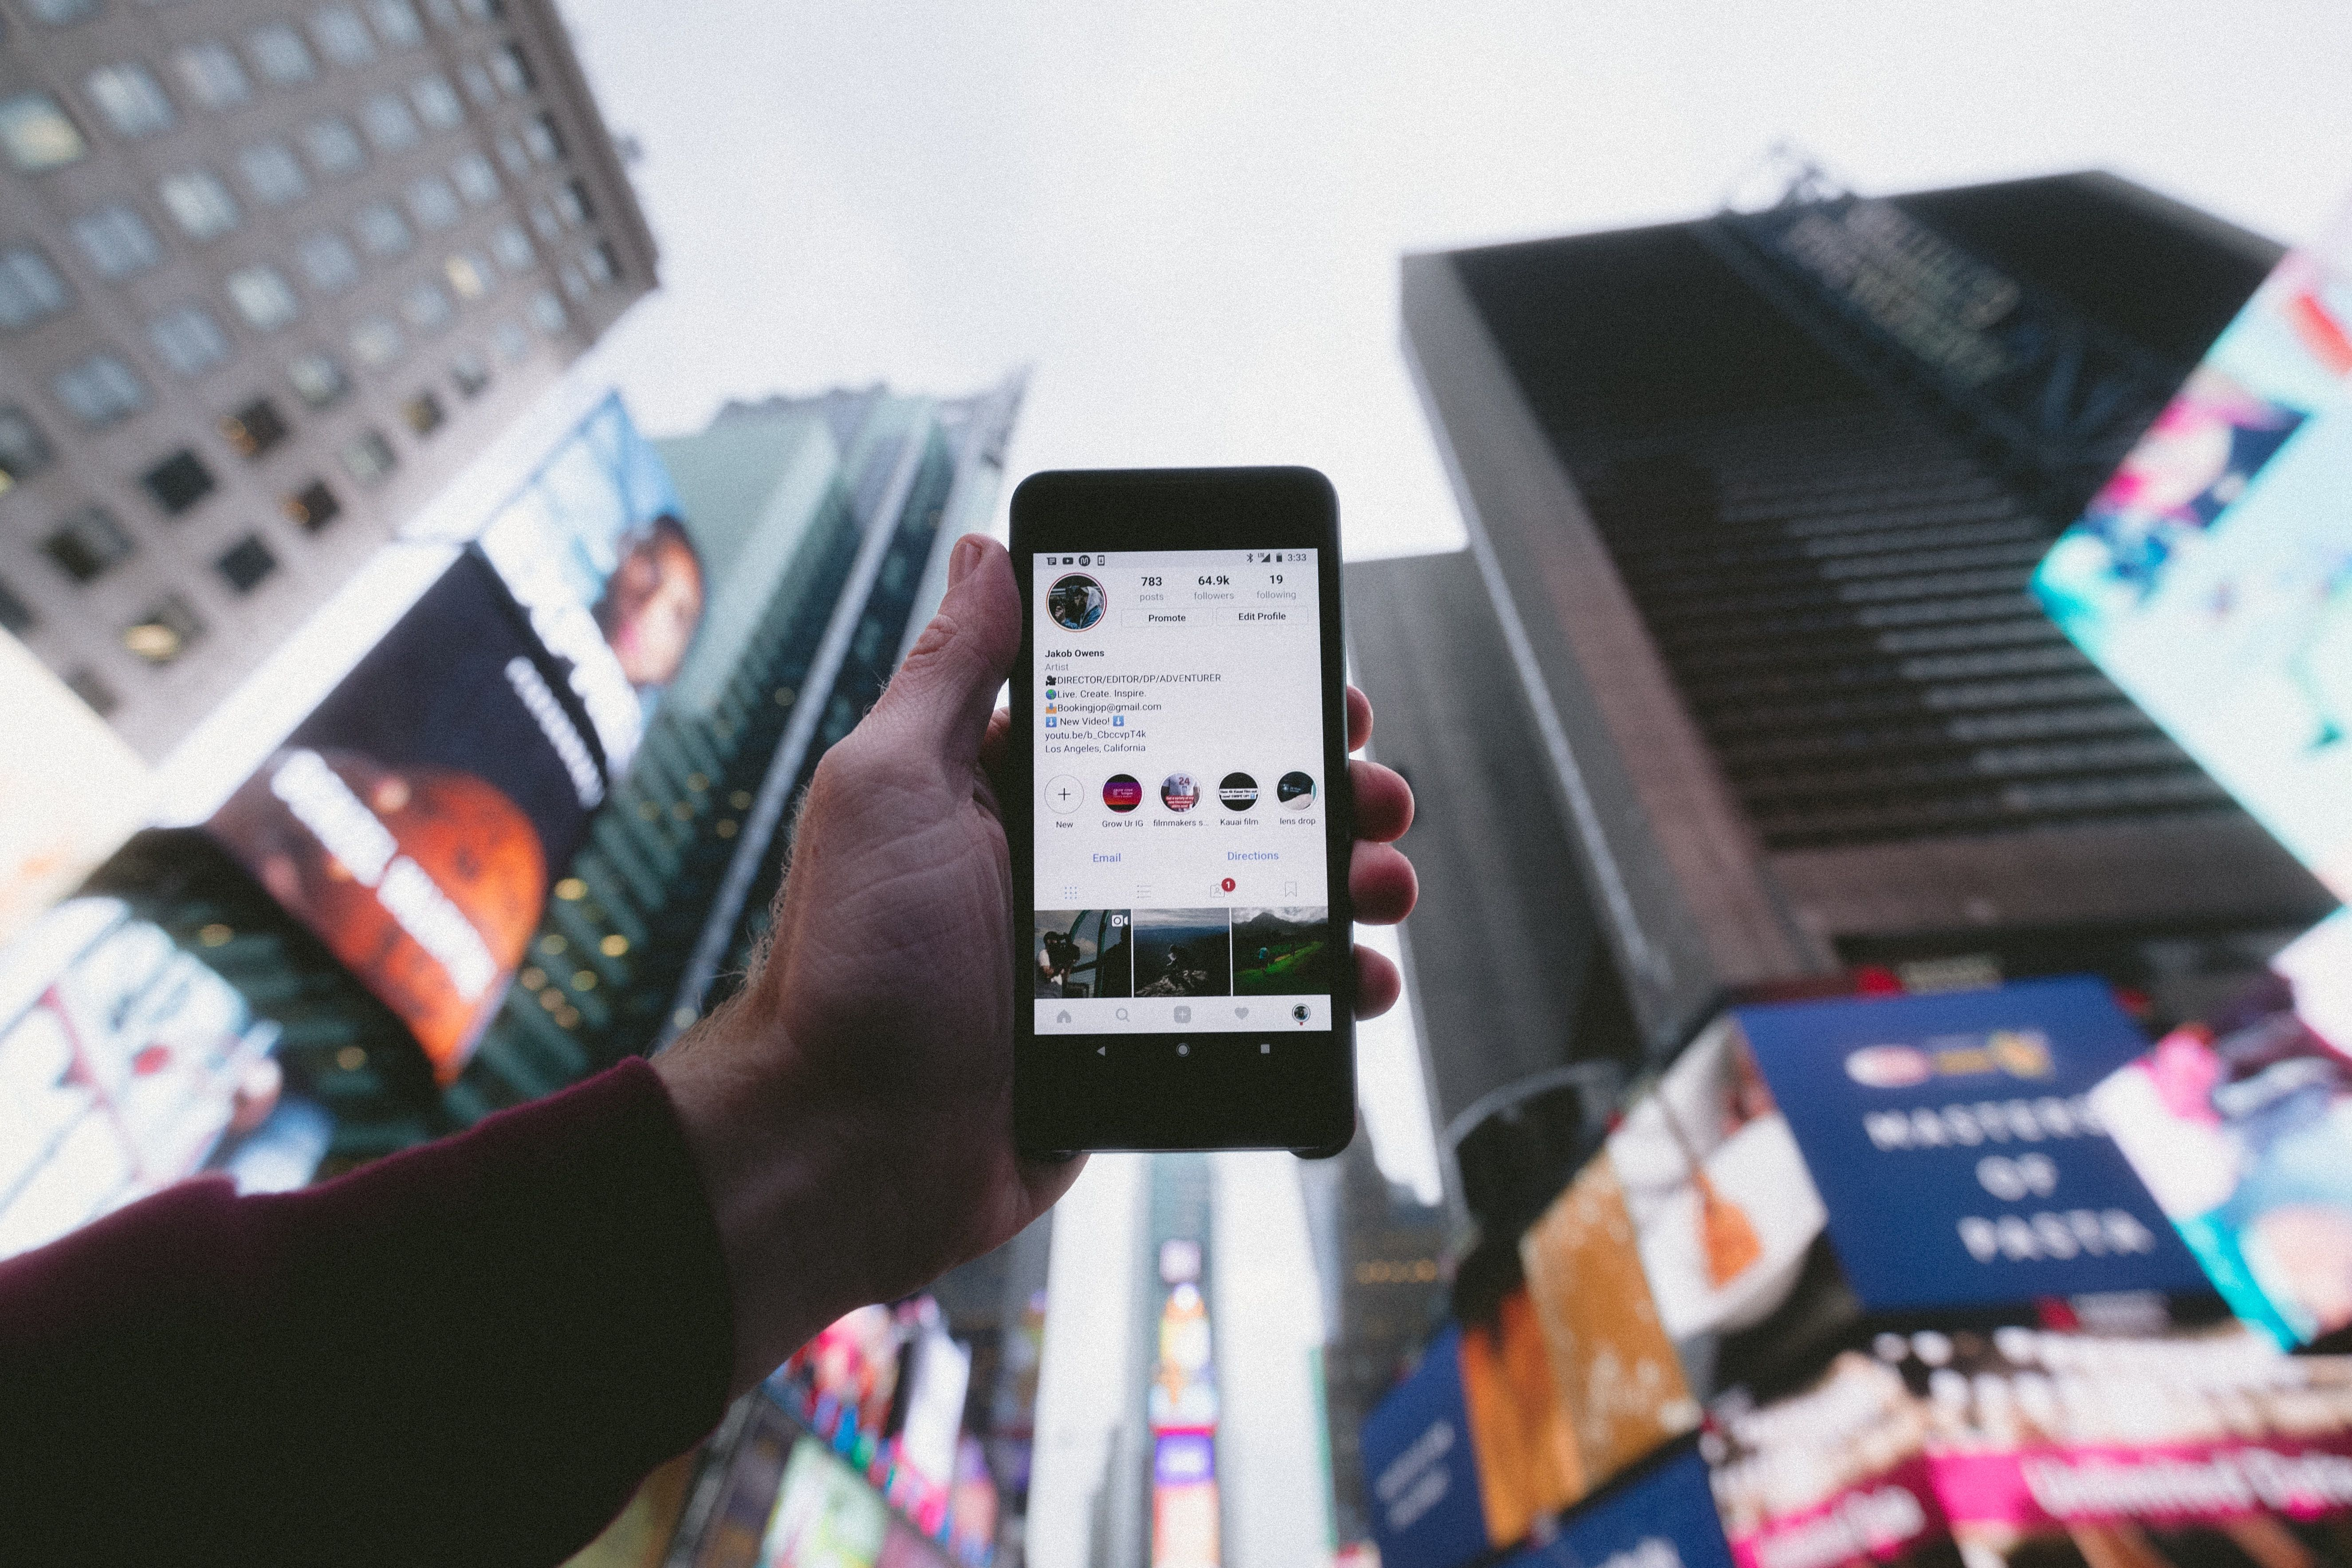 Mobile Phone against Times Square